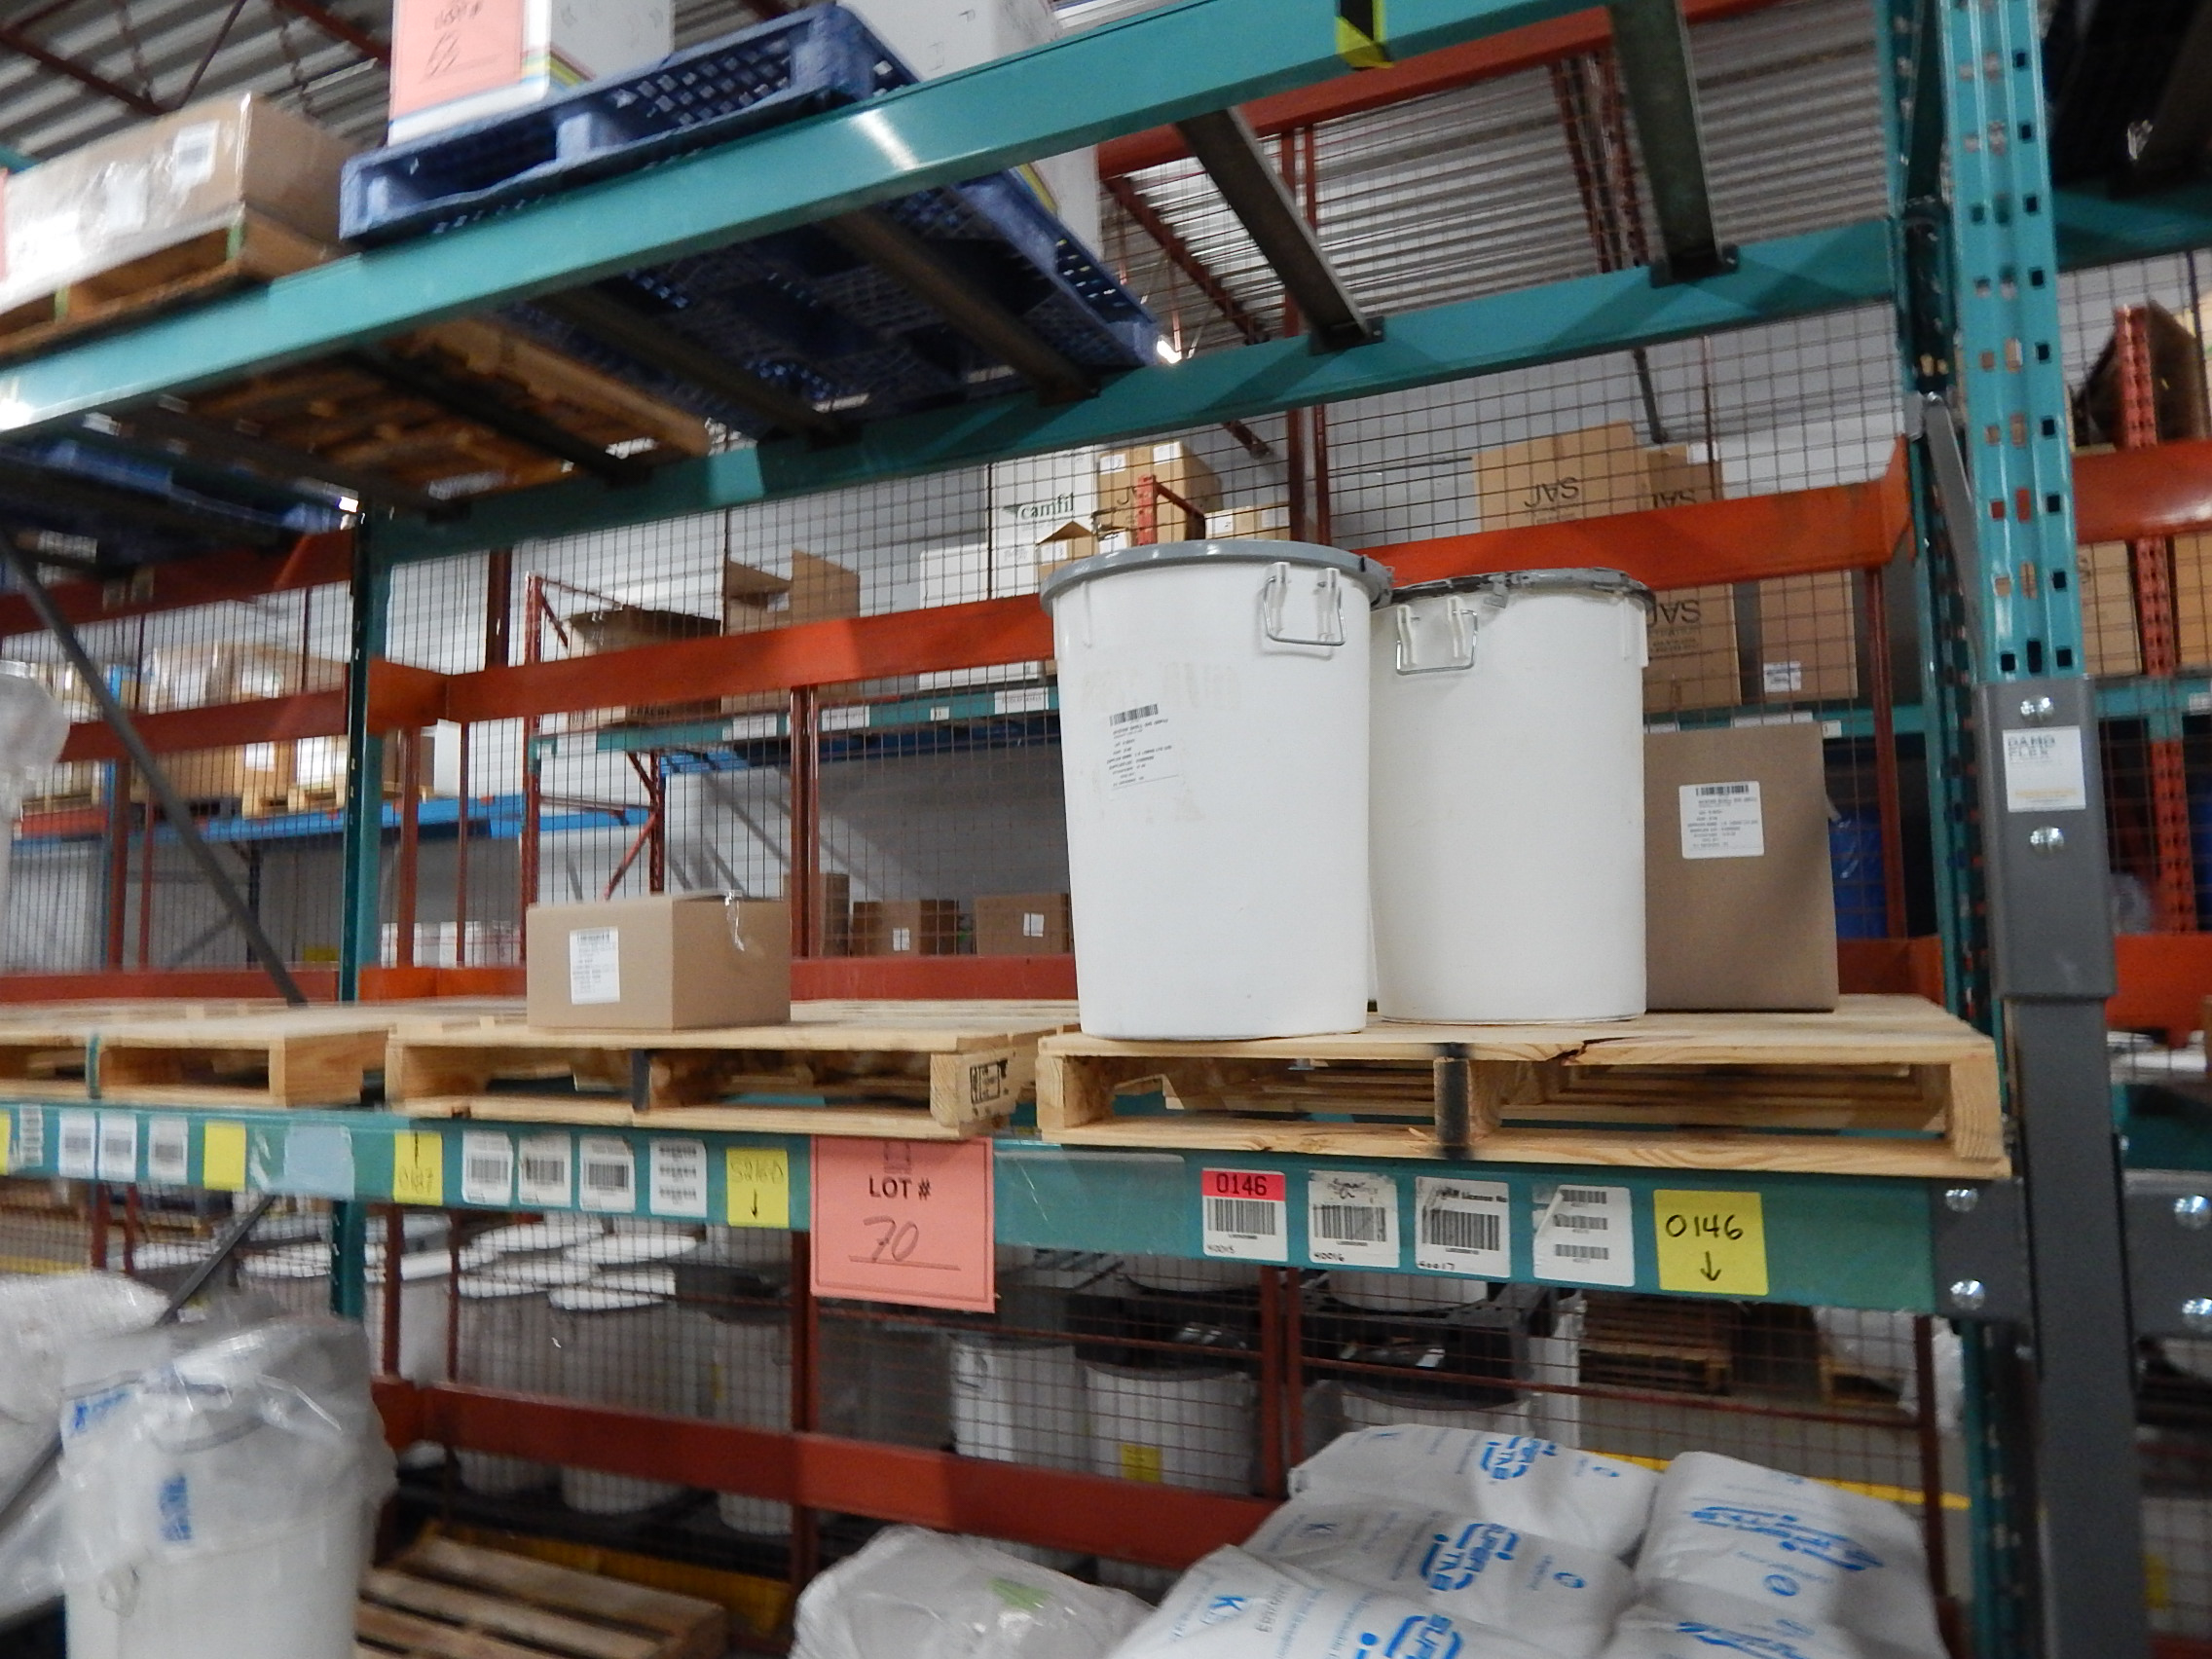 Lot 70 - LOT/ CONTENTS OF SHELF CONSISTING OF PHARMACEUTICAL SUPPLIES